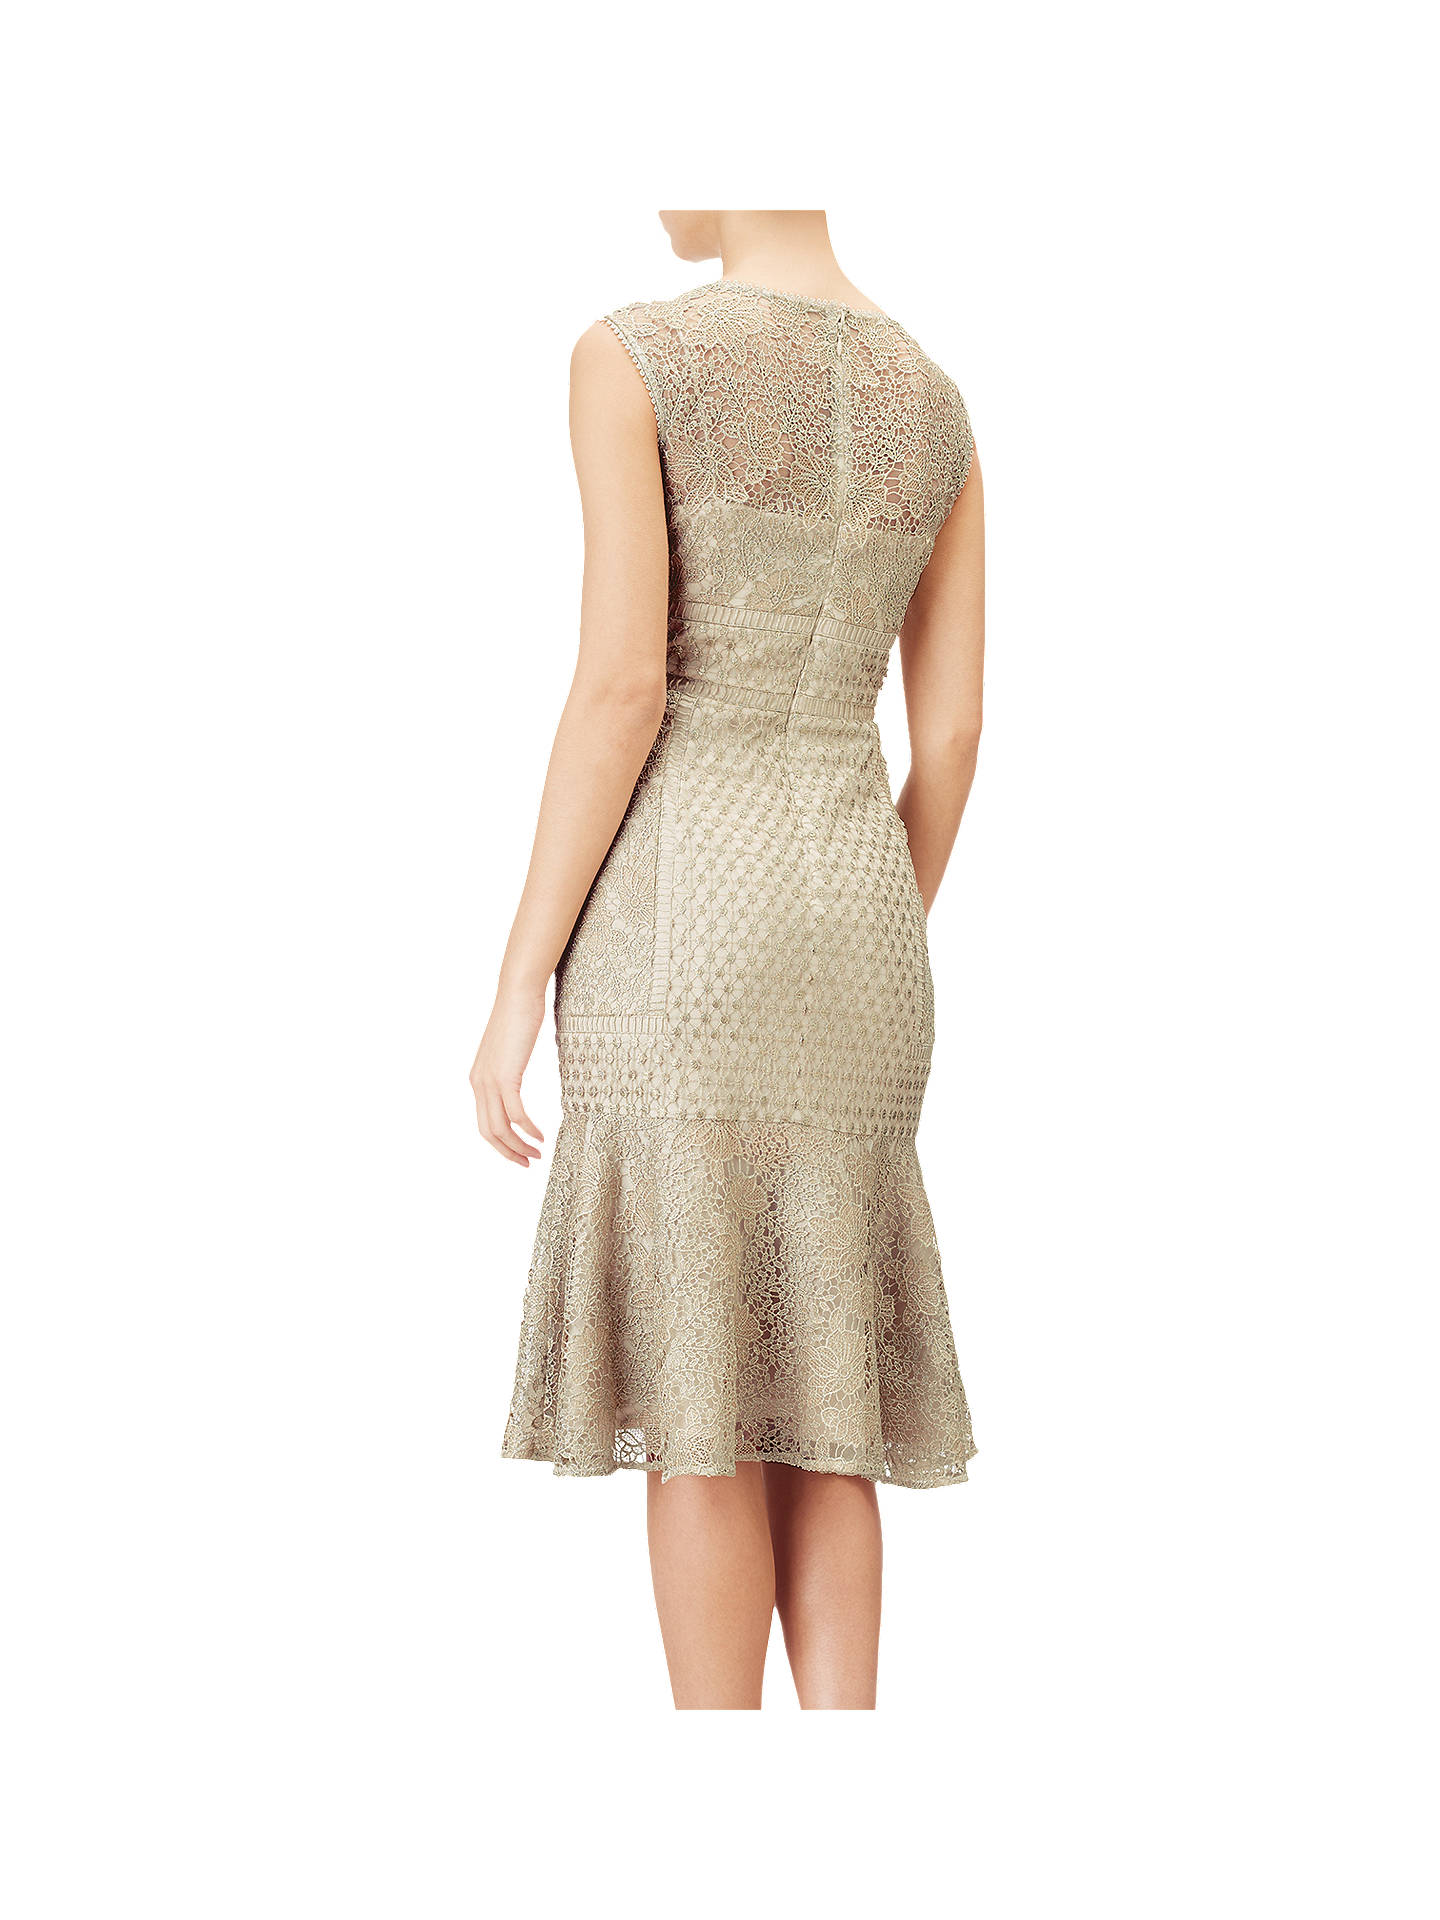 BuyAdrianna Papell Short Metallic Lace Dress, Gold, 14 Online at johnlewis.com